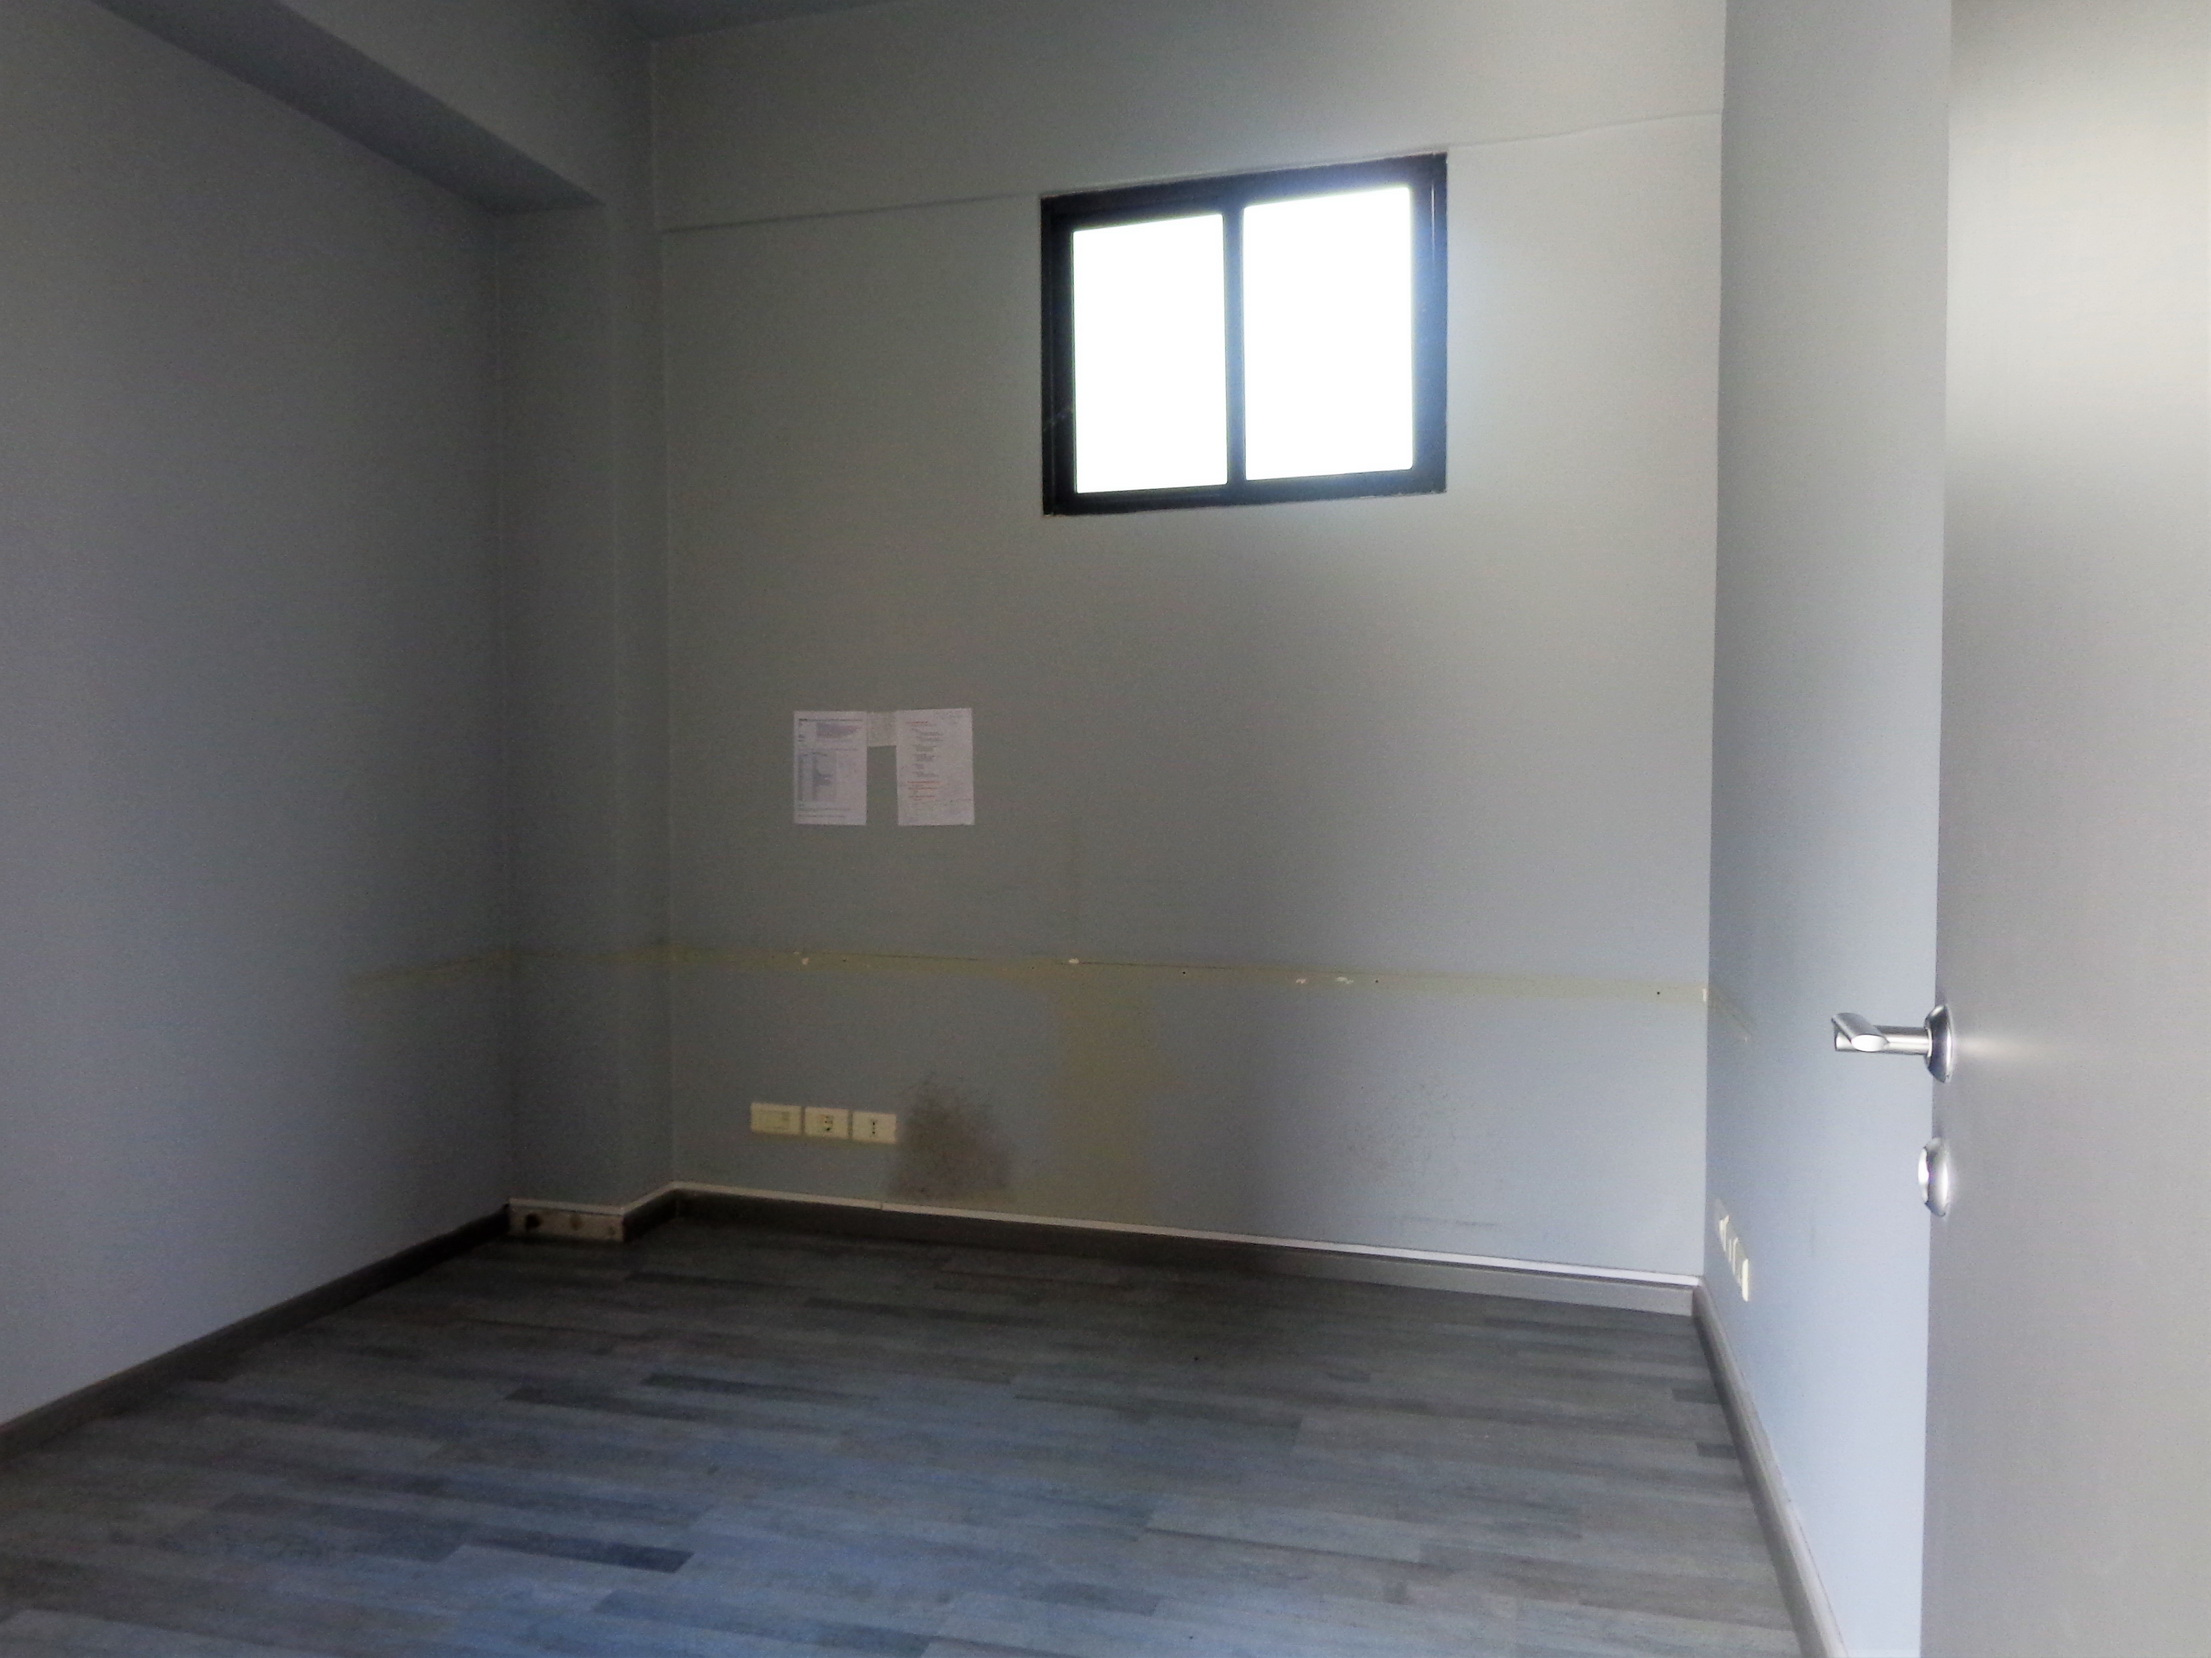 Office for Rent, Beirut Central District, 85 sqm,  25,500 USD